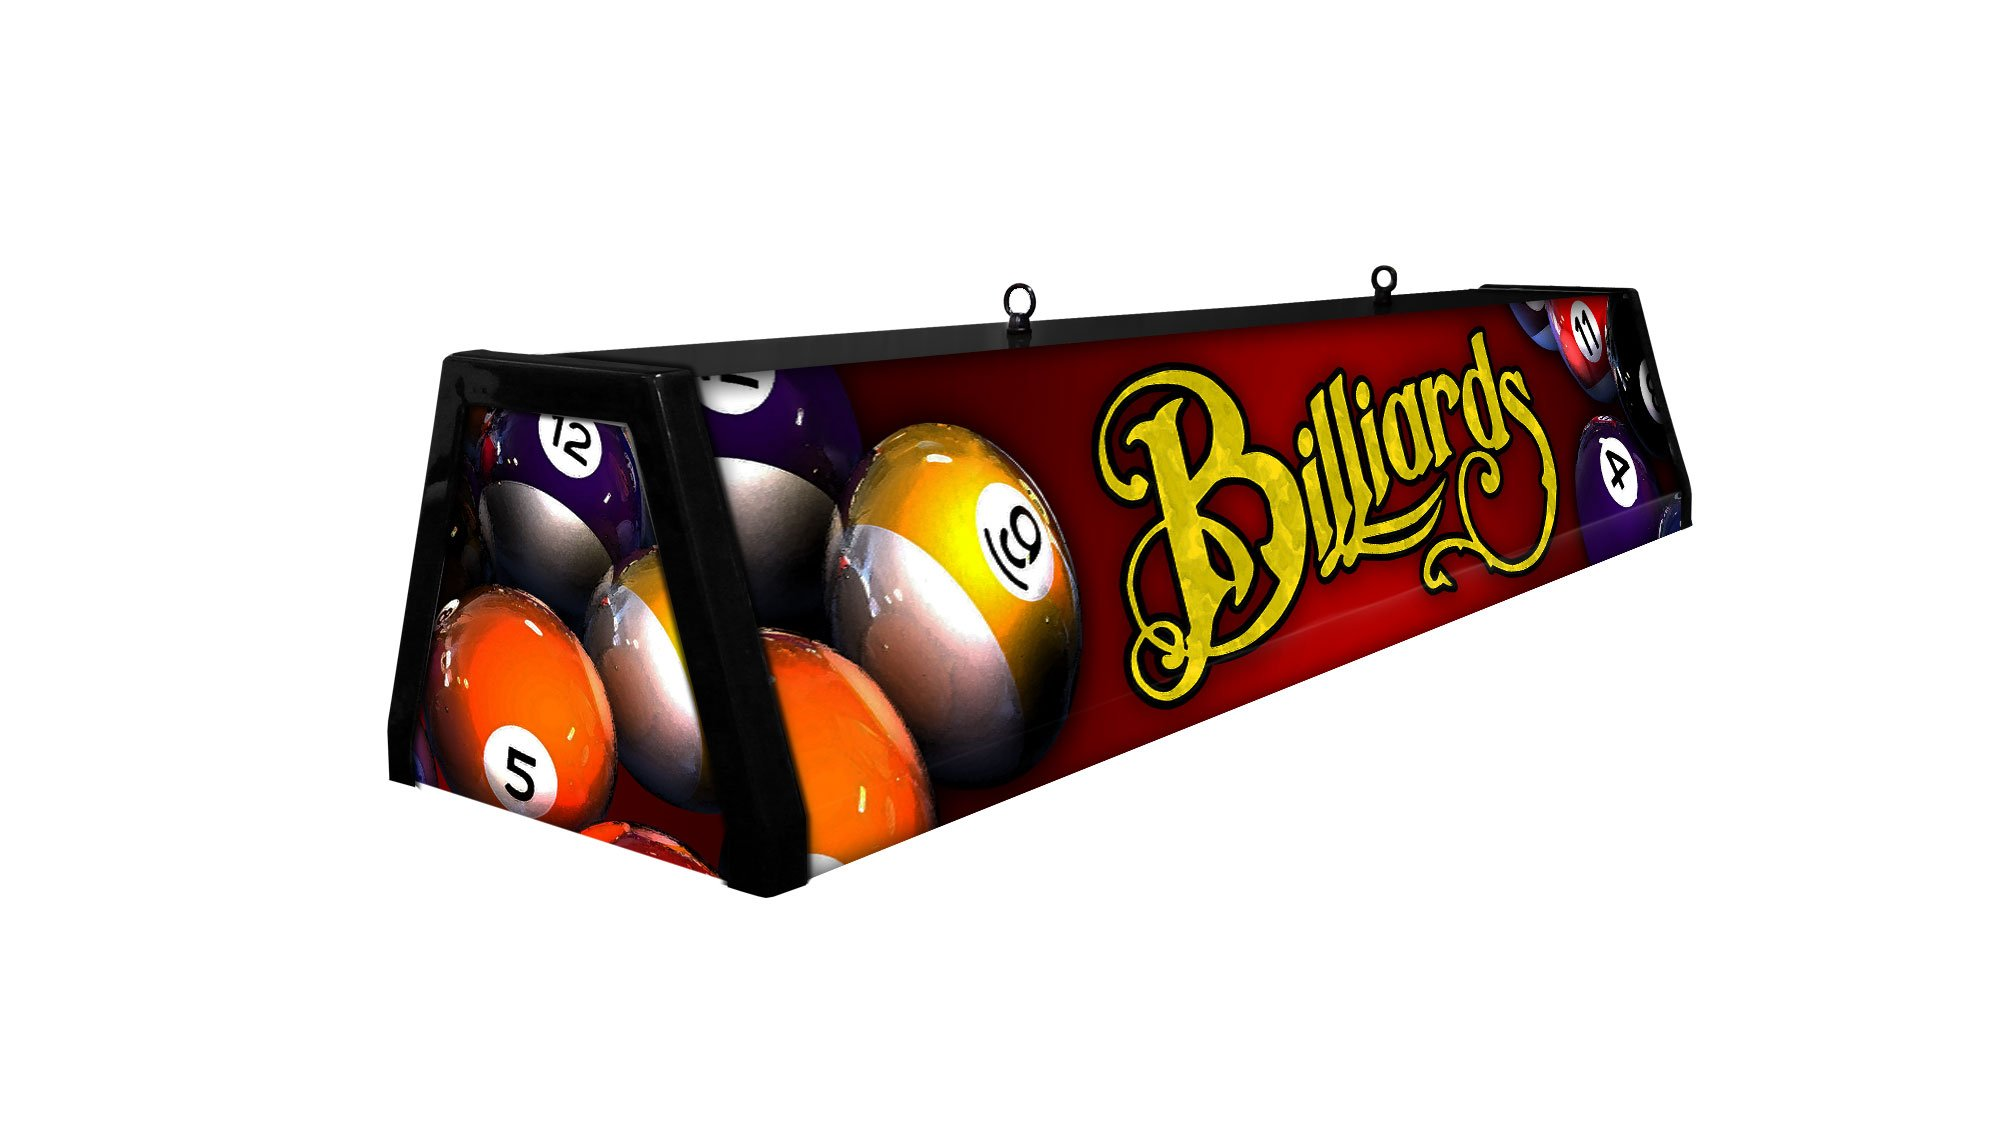 44'' Acrylic Pool Table Light, RED BILLIARDS